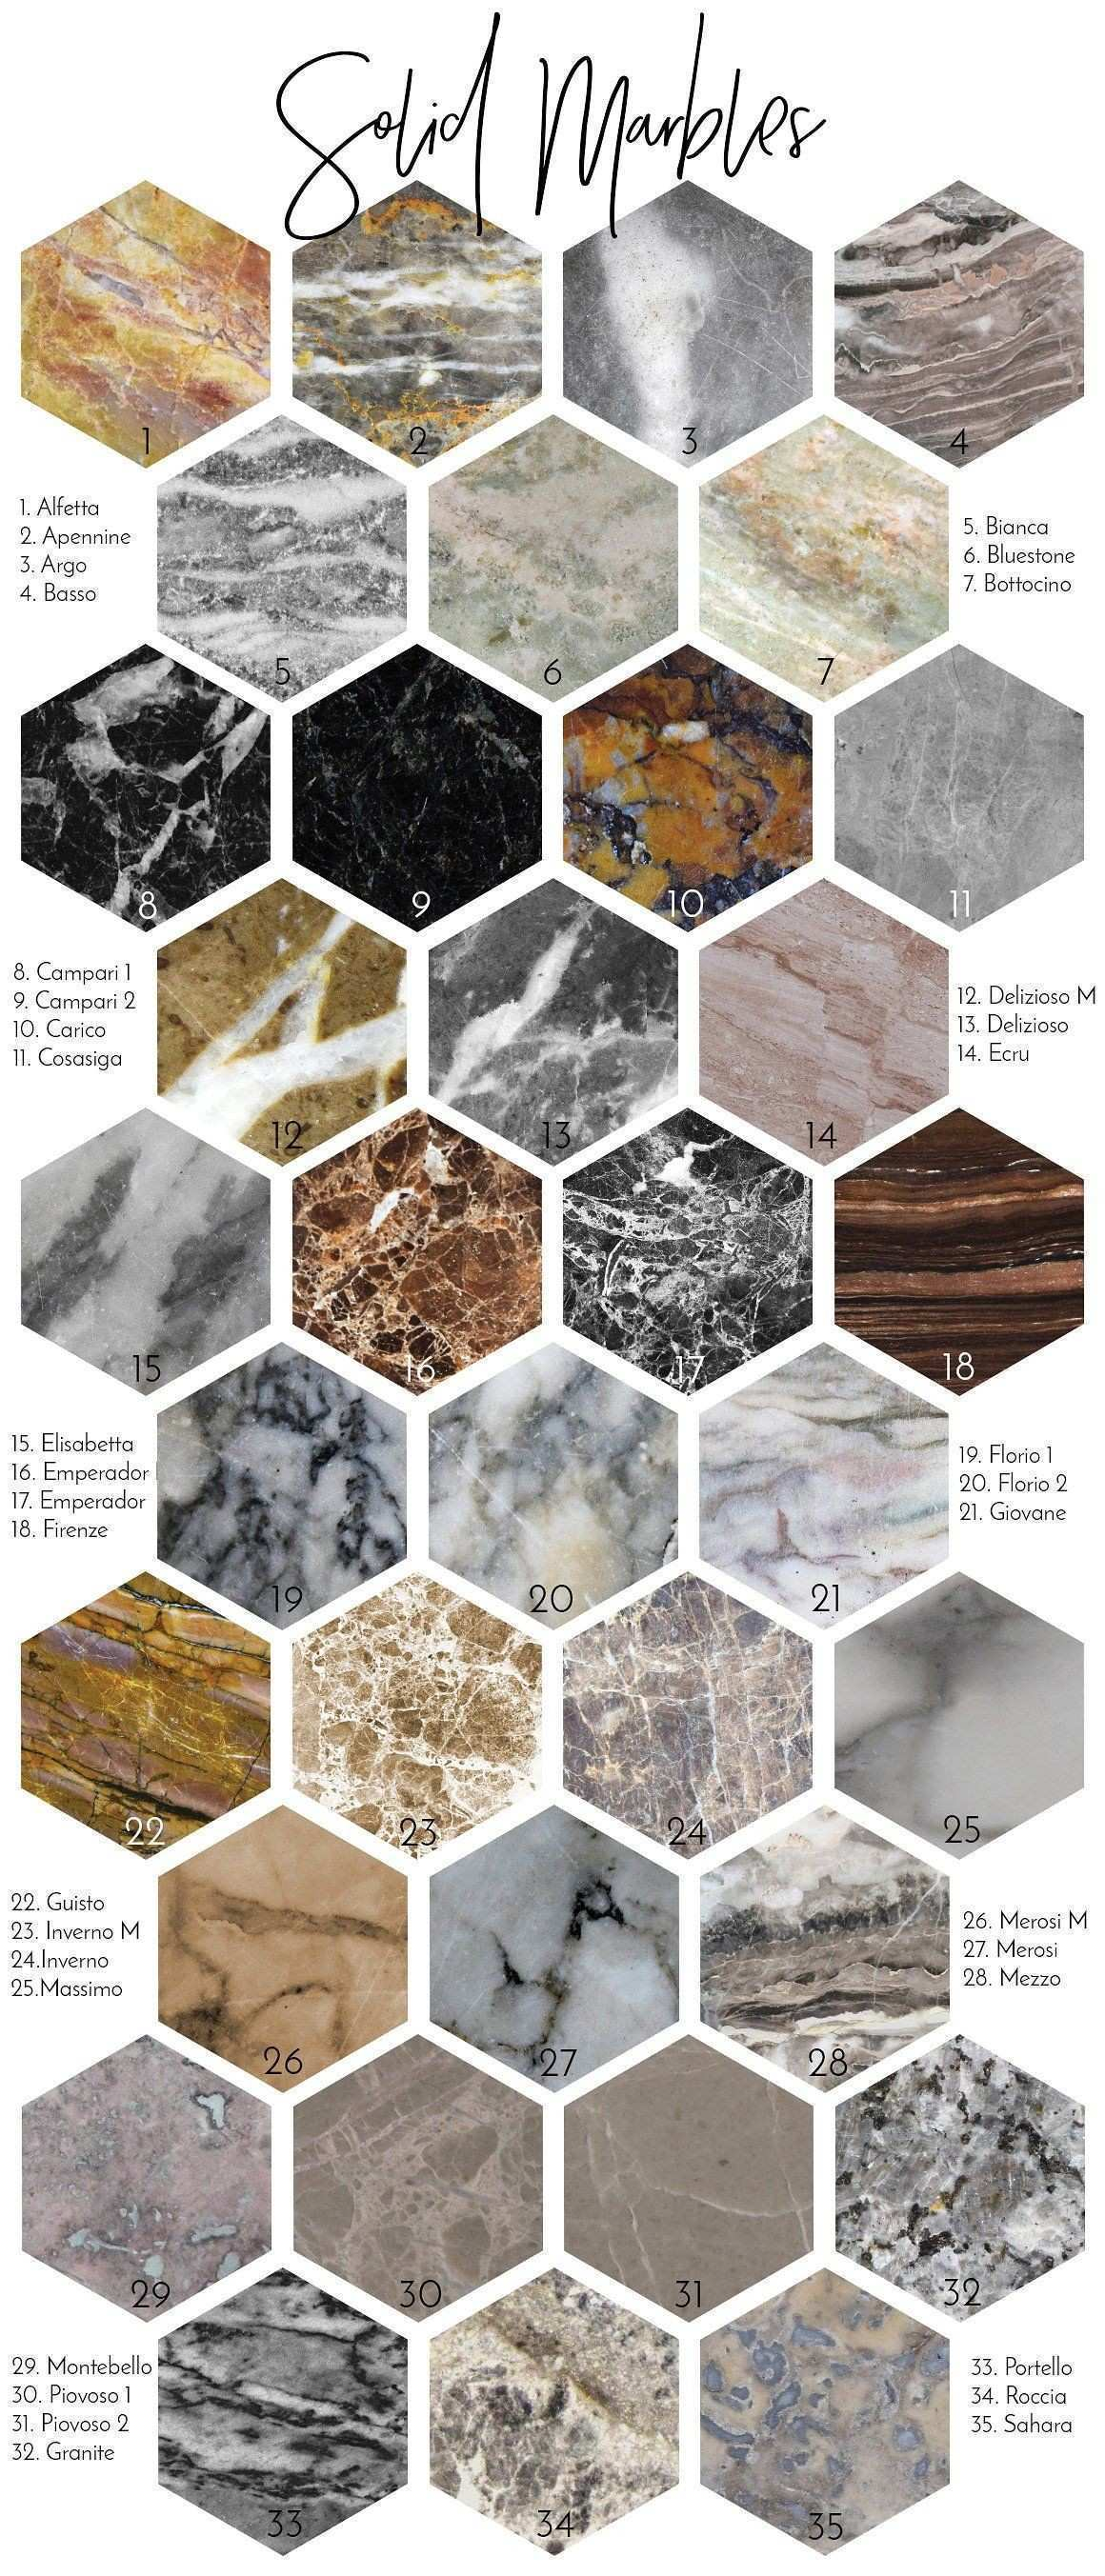 Real Marble Backgrounds & Styles Pinterest